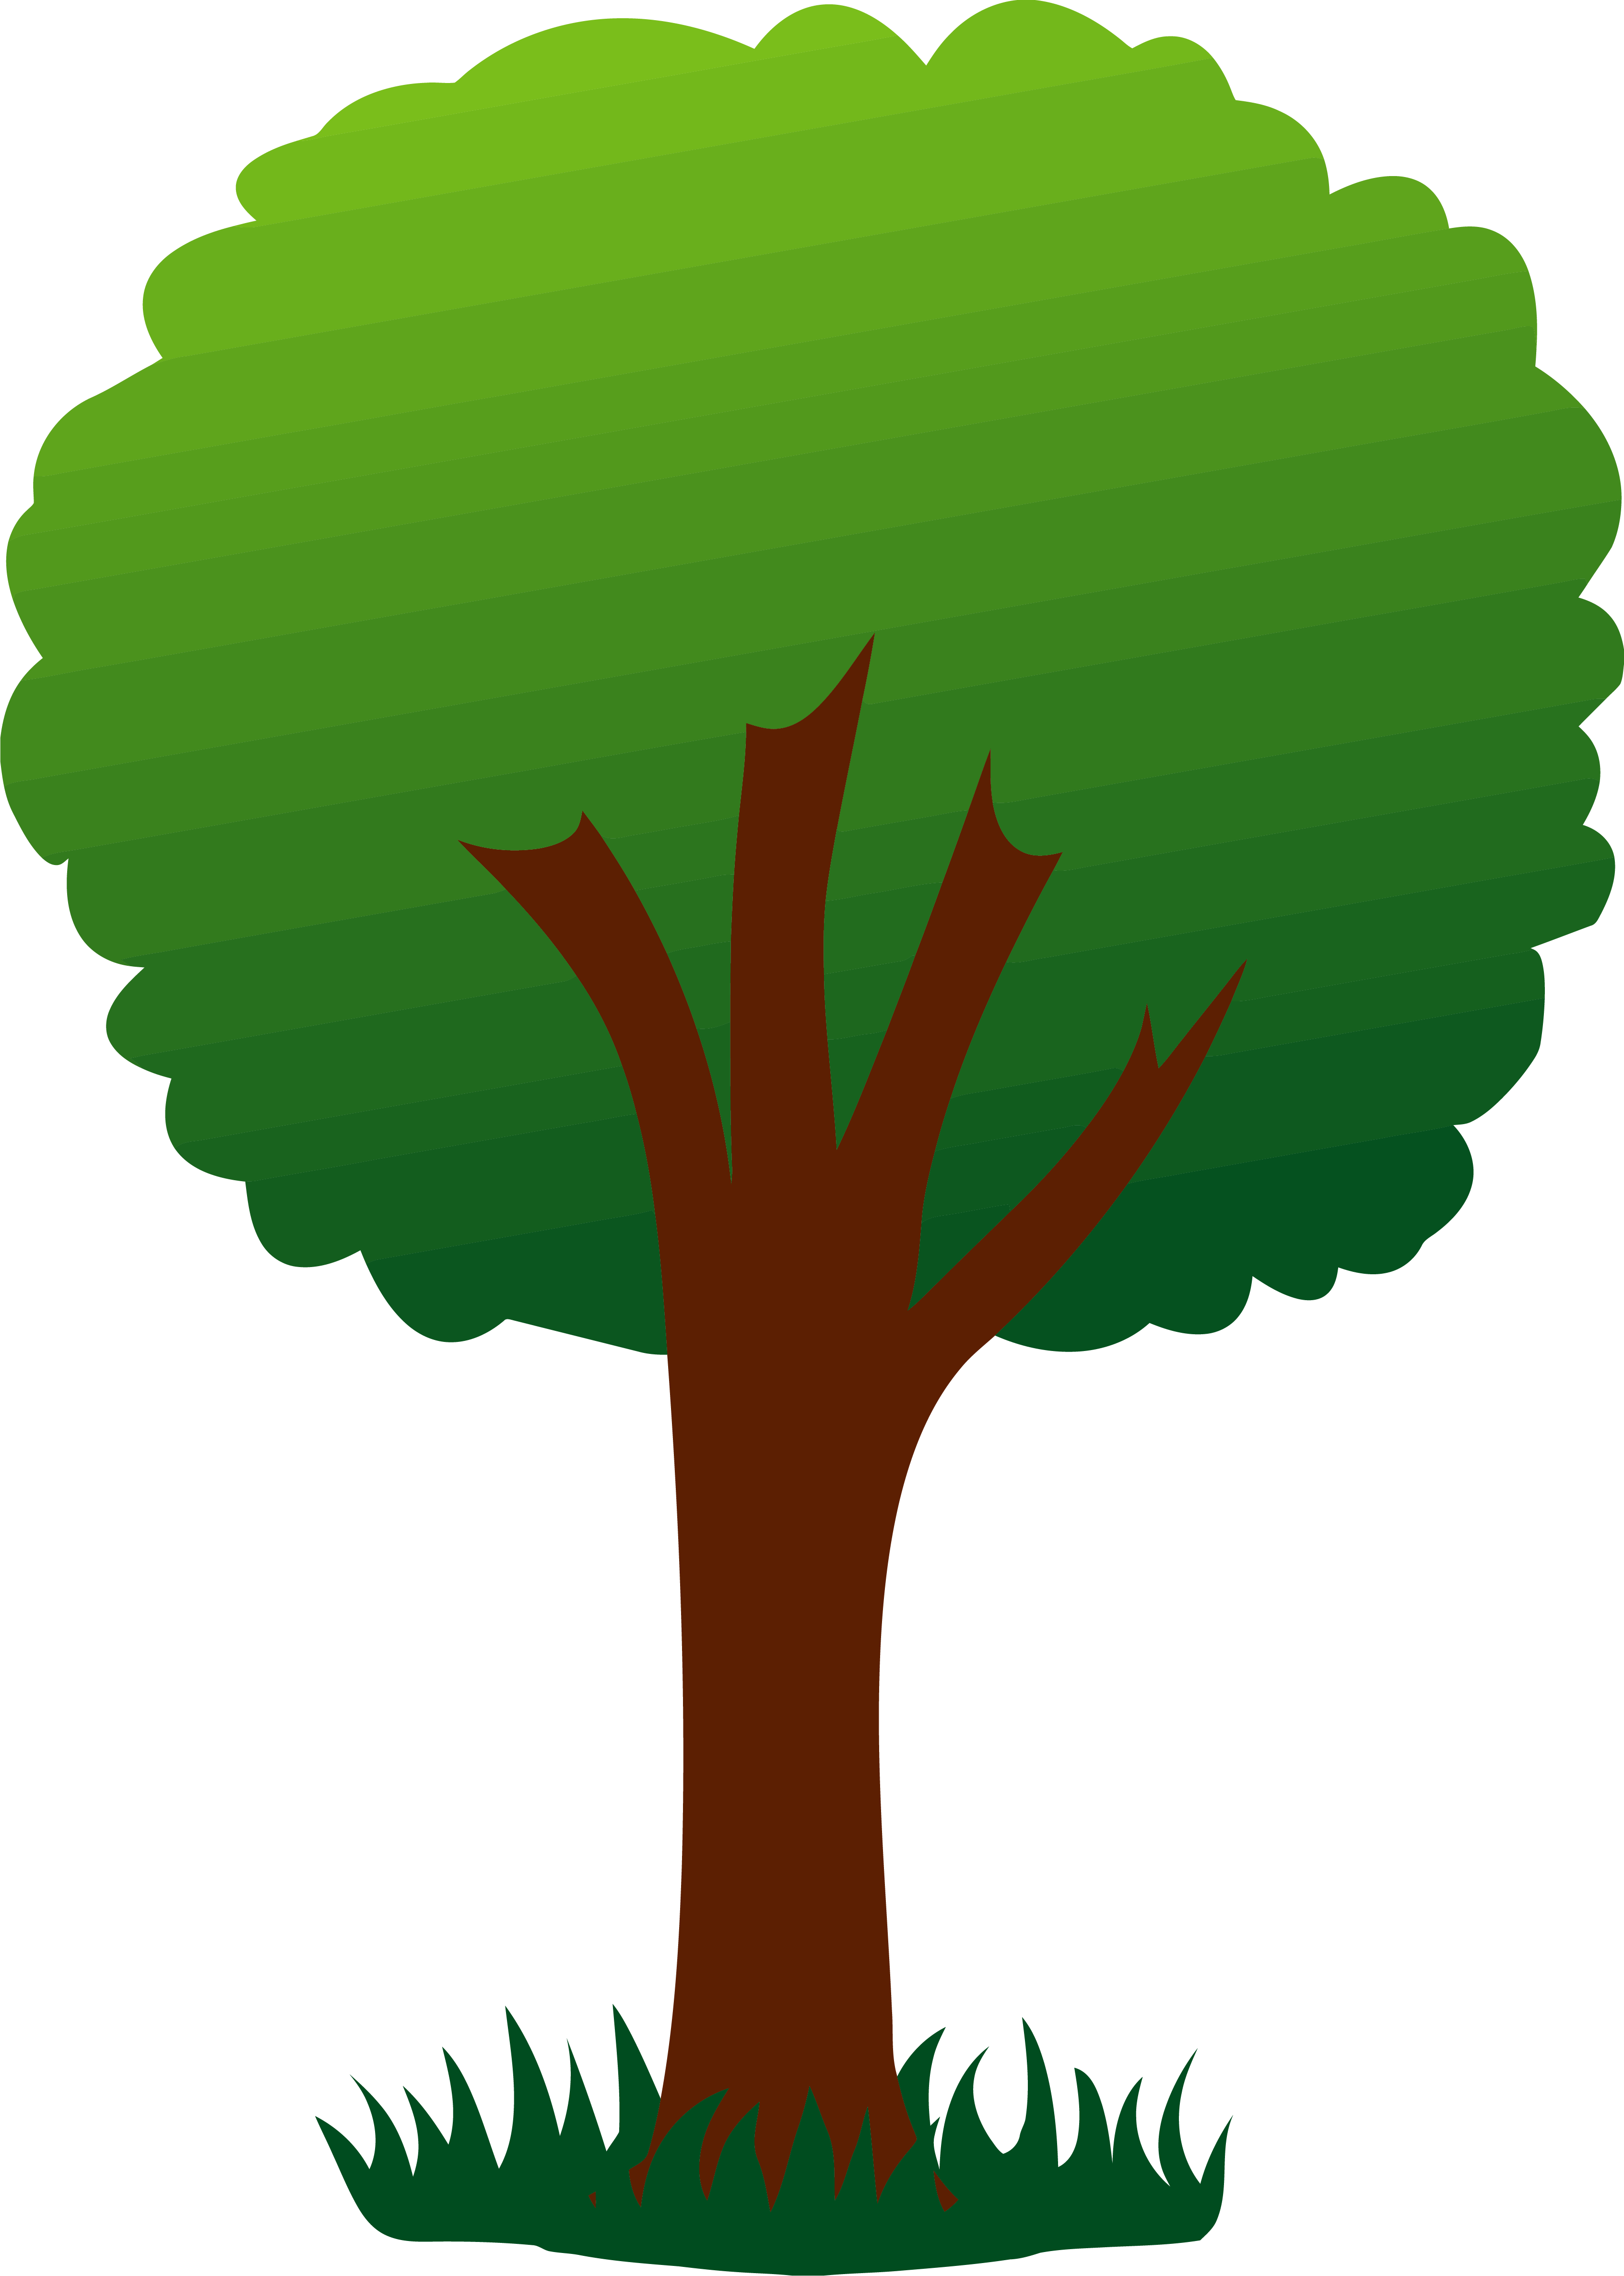 Family Tree Clipart Clipart Free Clipart Images Download.